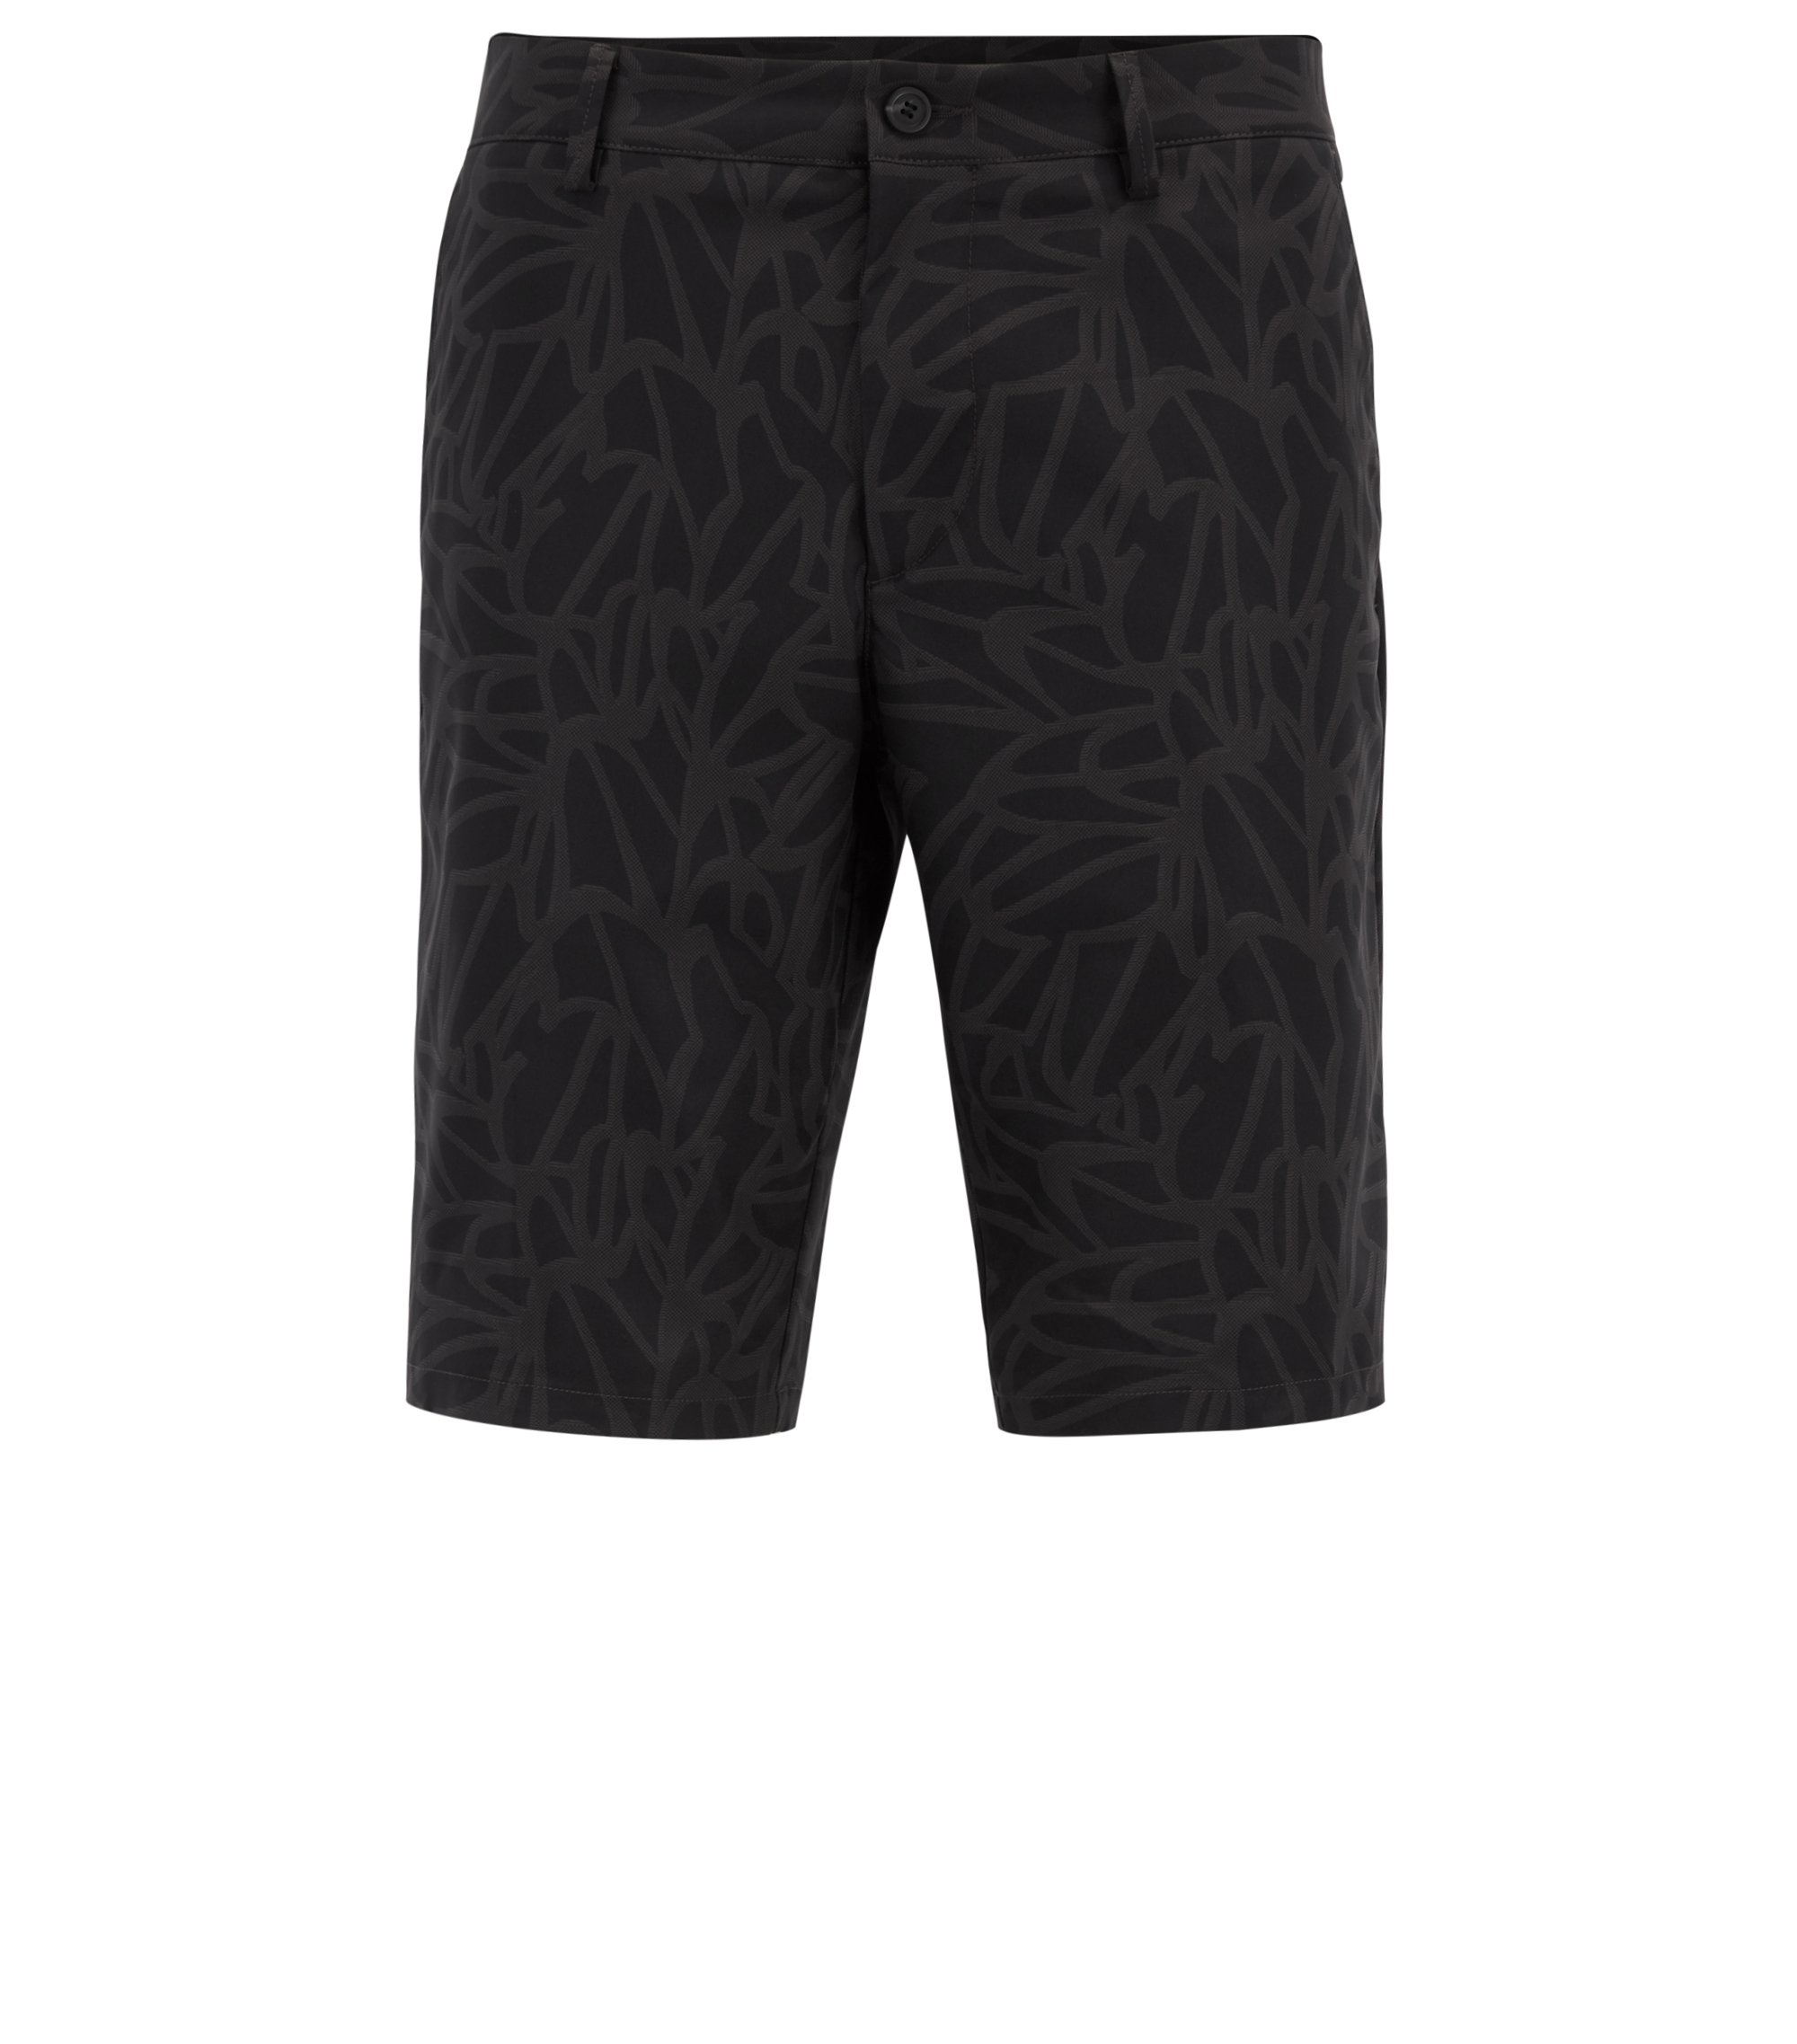 Tailored shorts in water-repellent printed twill, Black